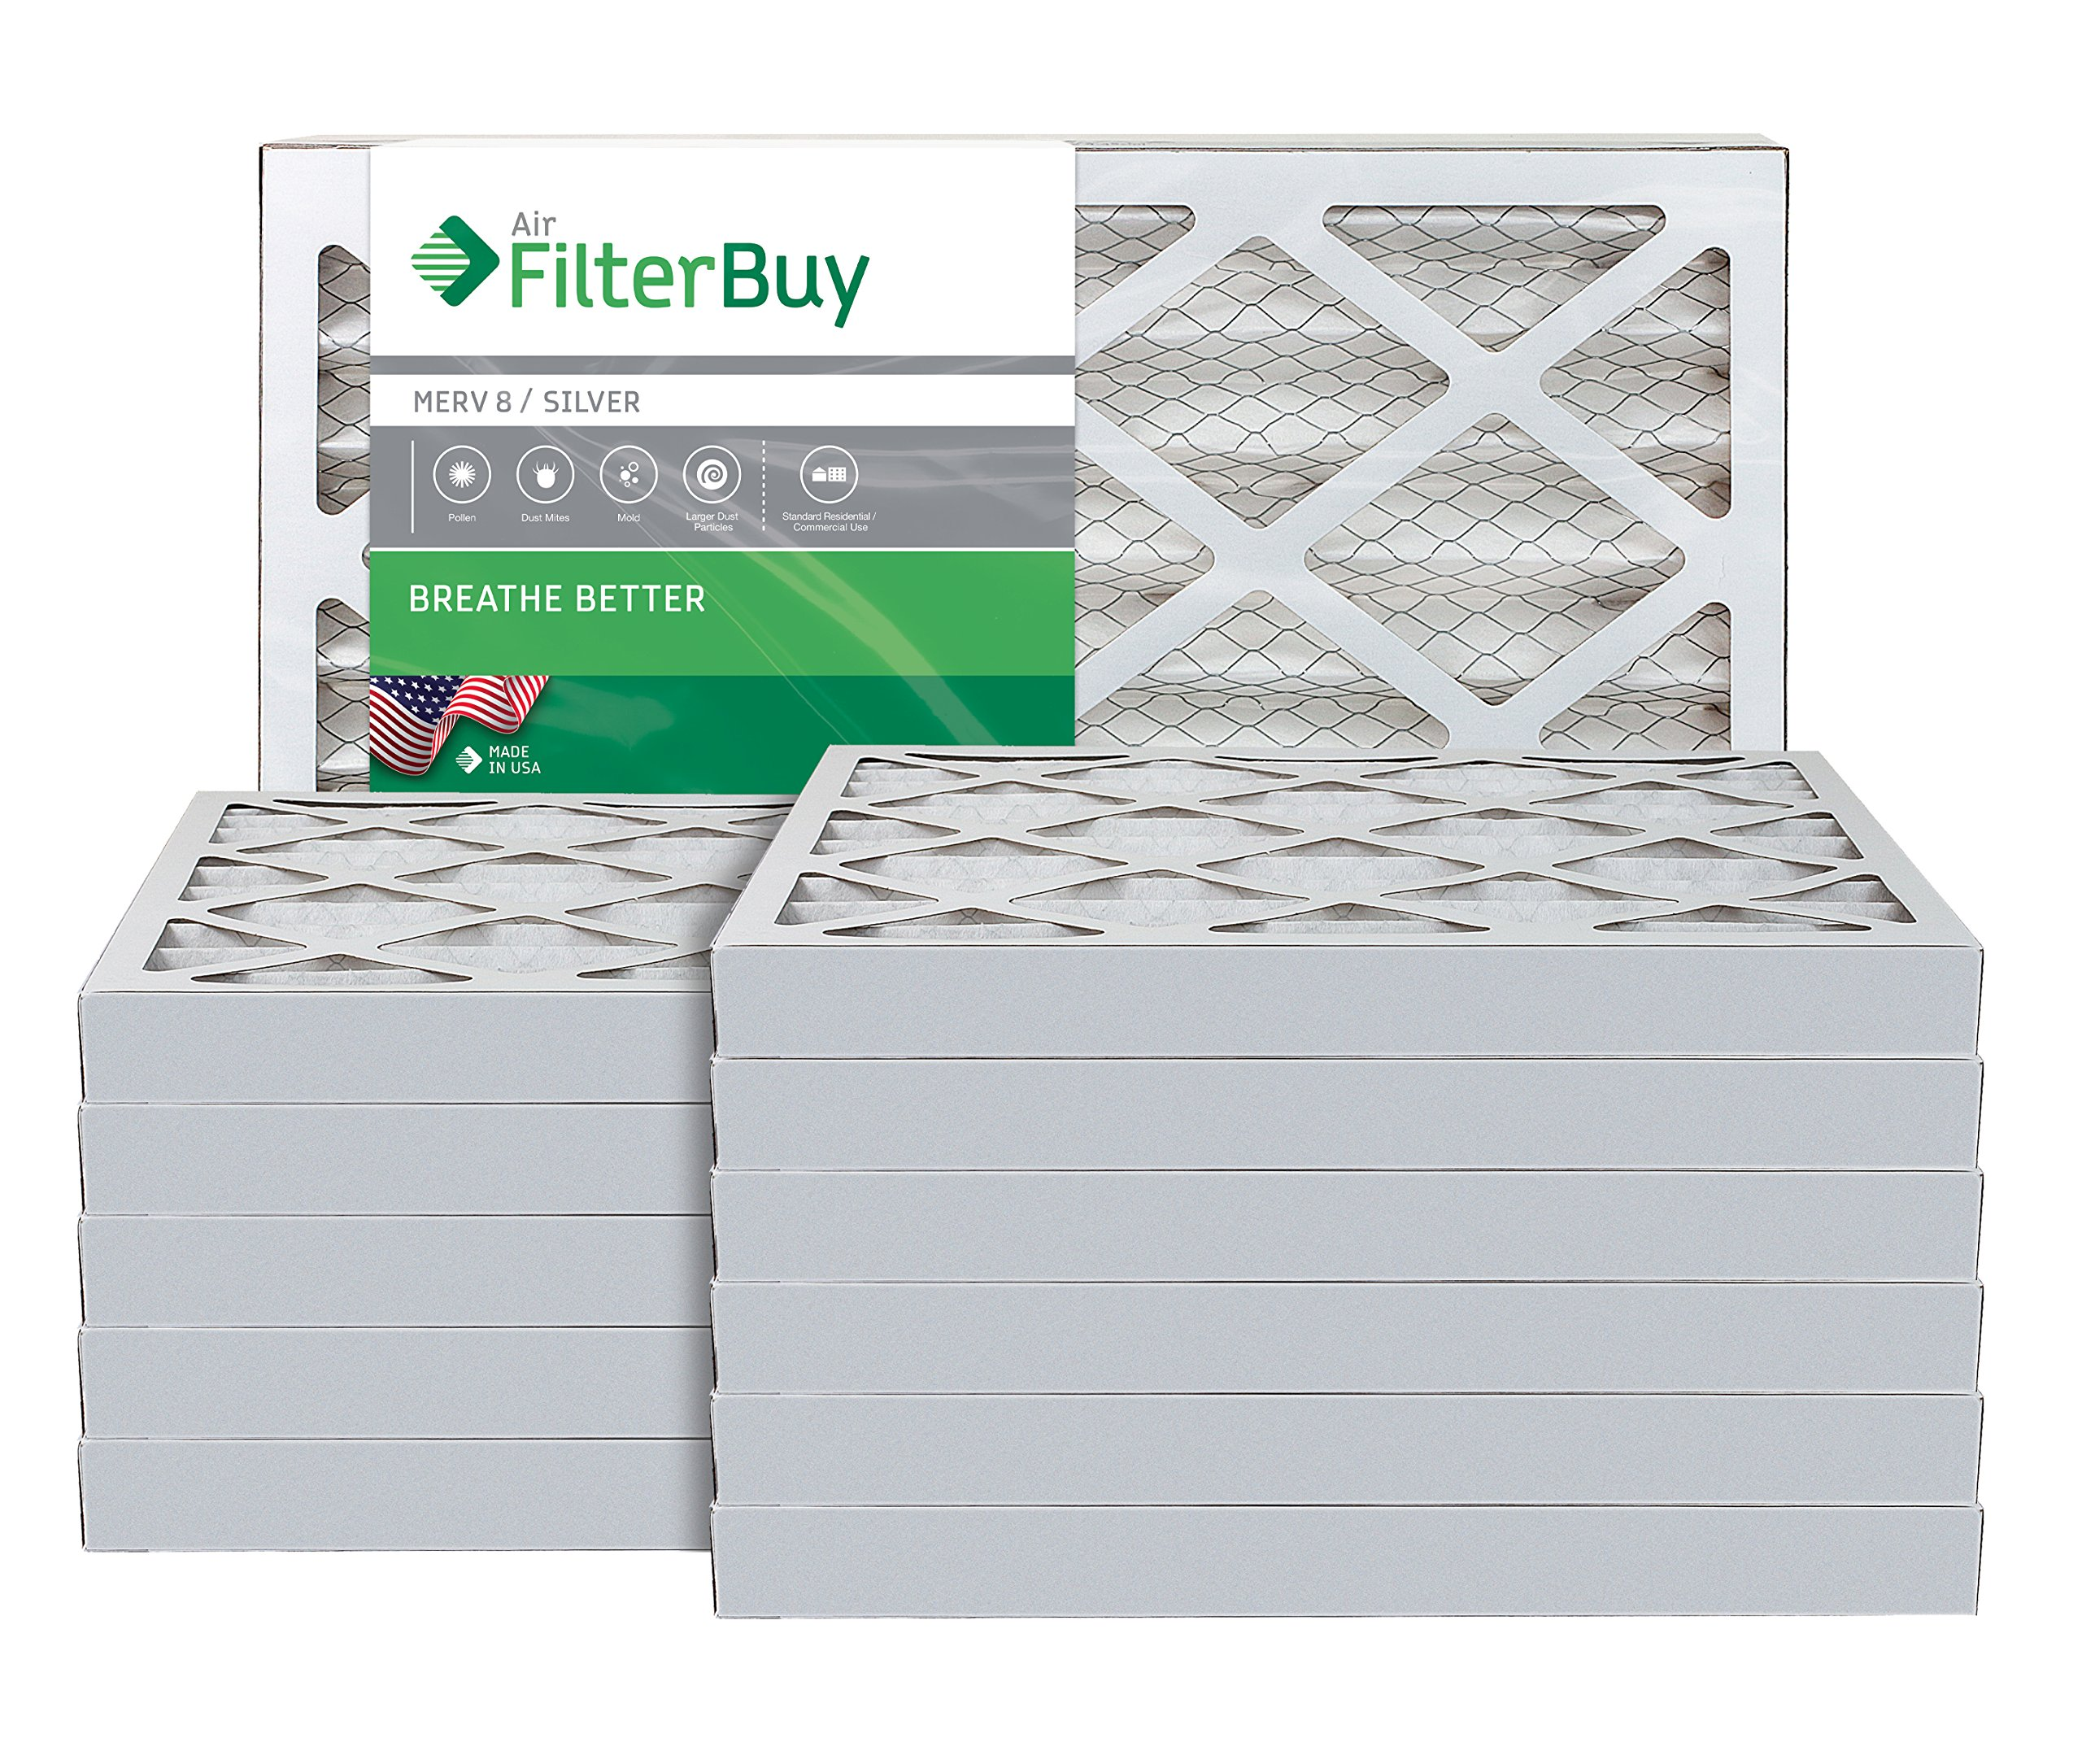 AFB Silver MERV 8 16x25x2 Pleated AC Furnace Air Filter. Pack of 12 Filters. 100% produced in the USA.